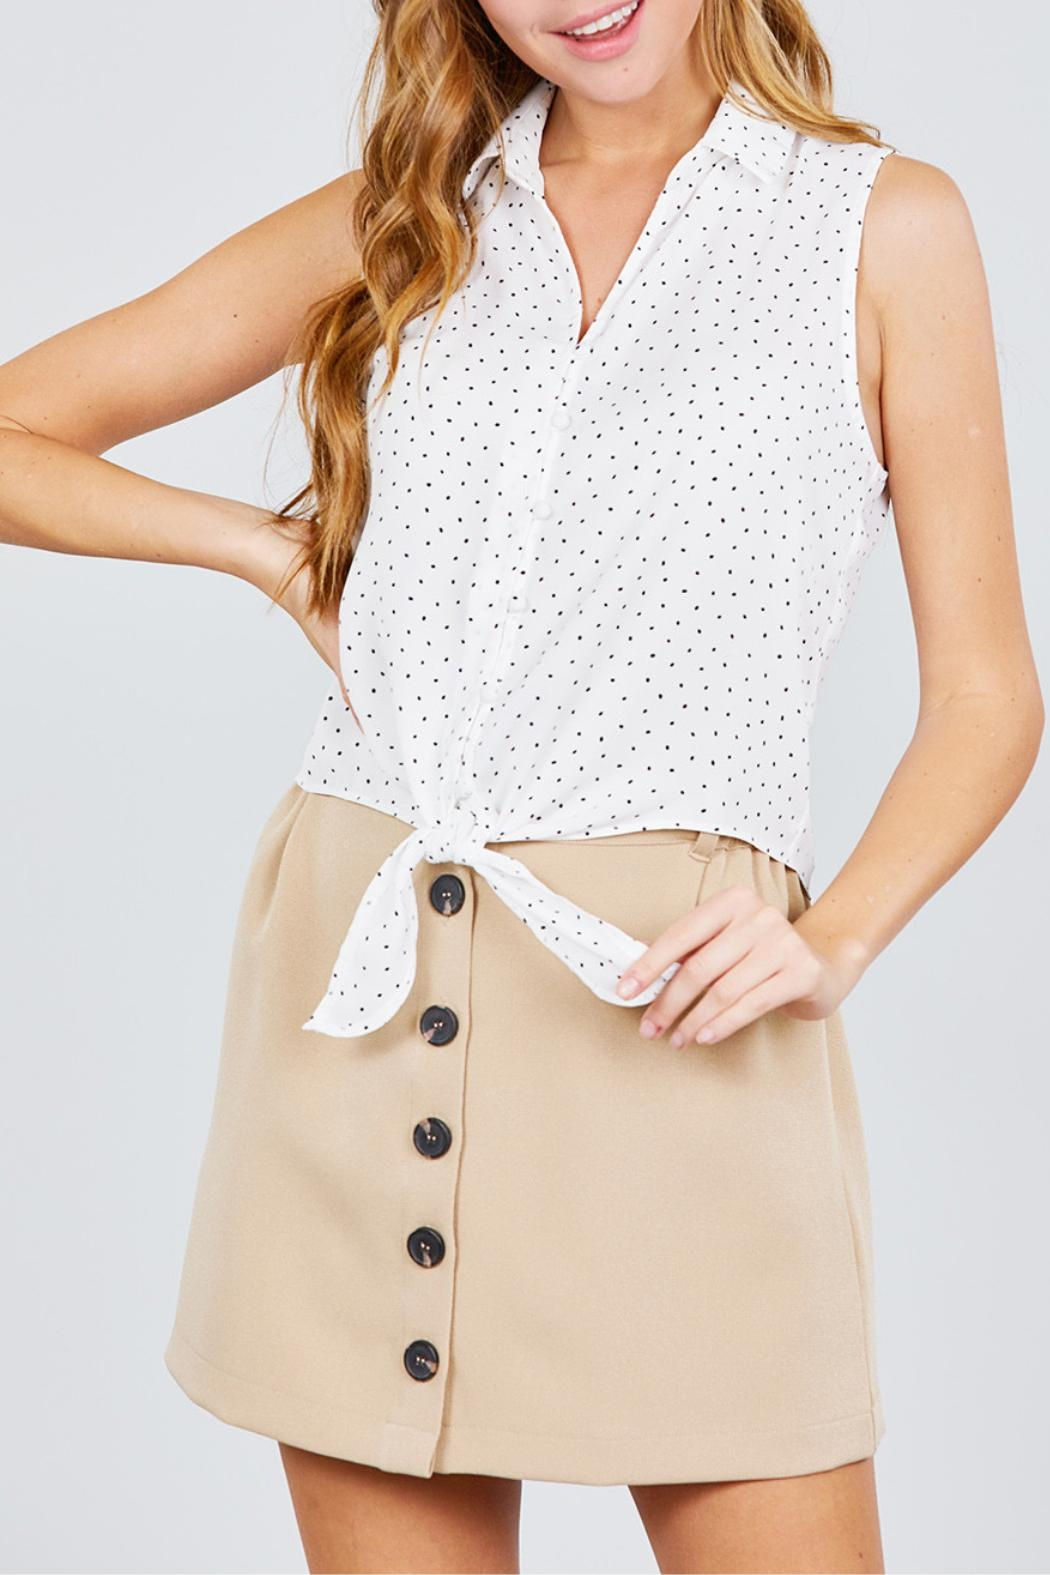 Active USA Khaki Button-Down Skirt - Front Cropped Image